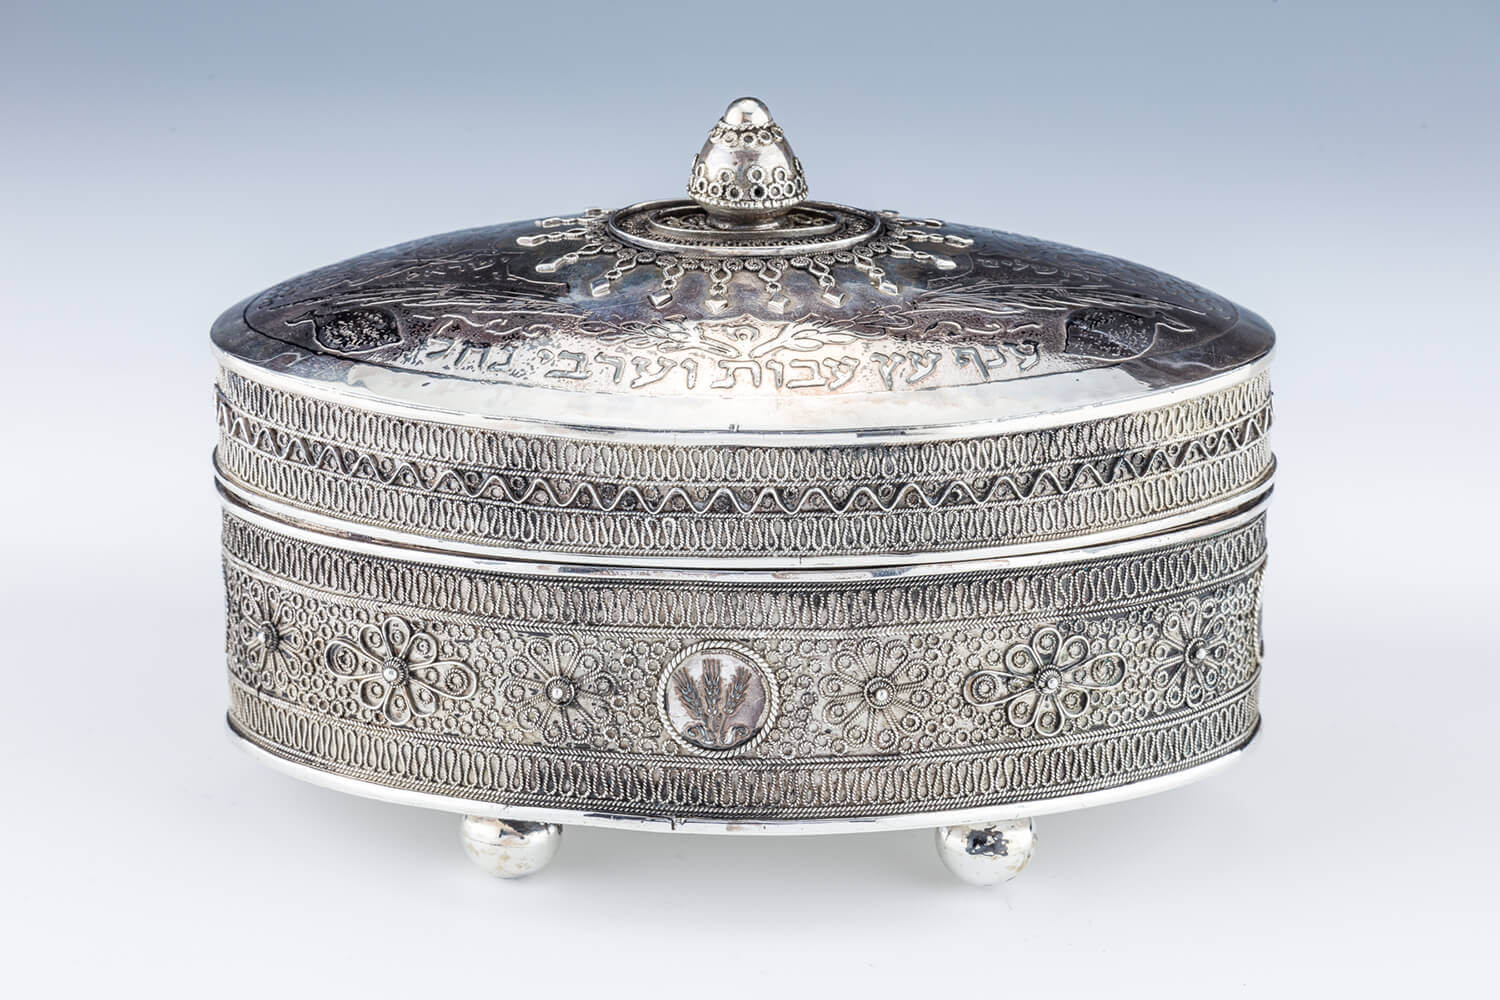 054. A LARGE STERLING SILVER ETROG BOX BY THE BEZALEL SCHOOL